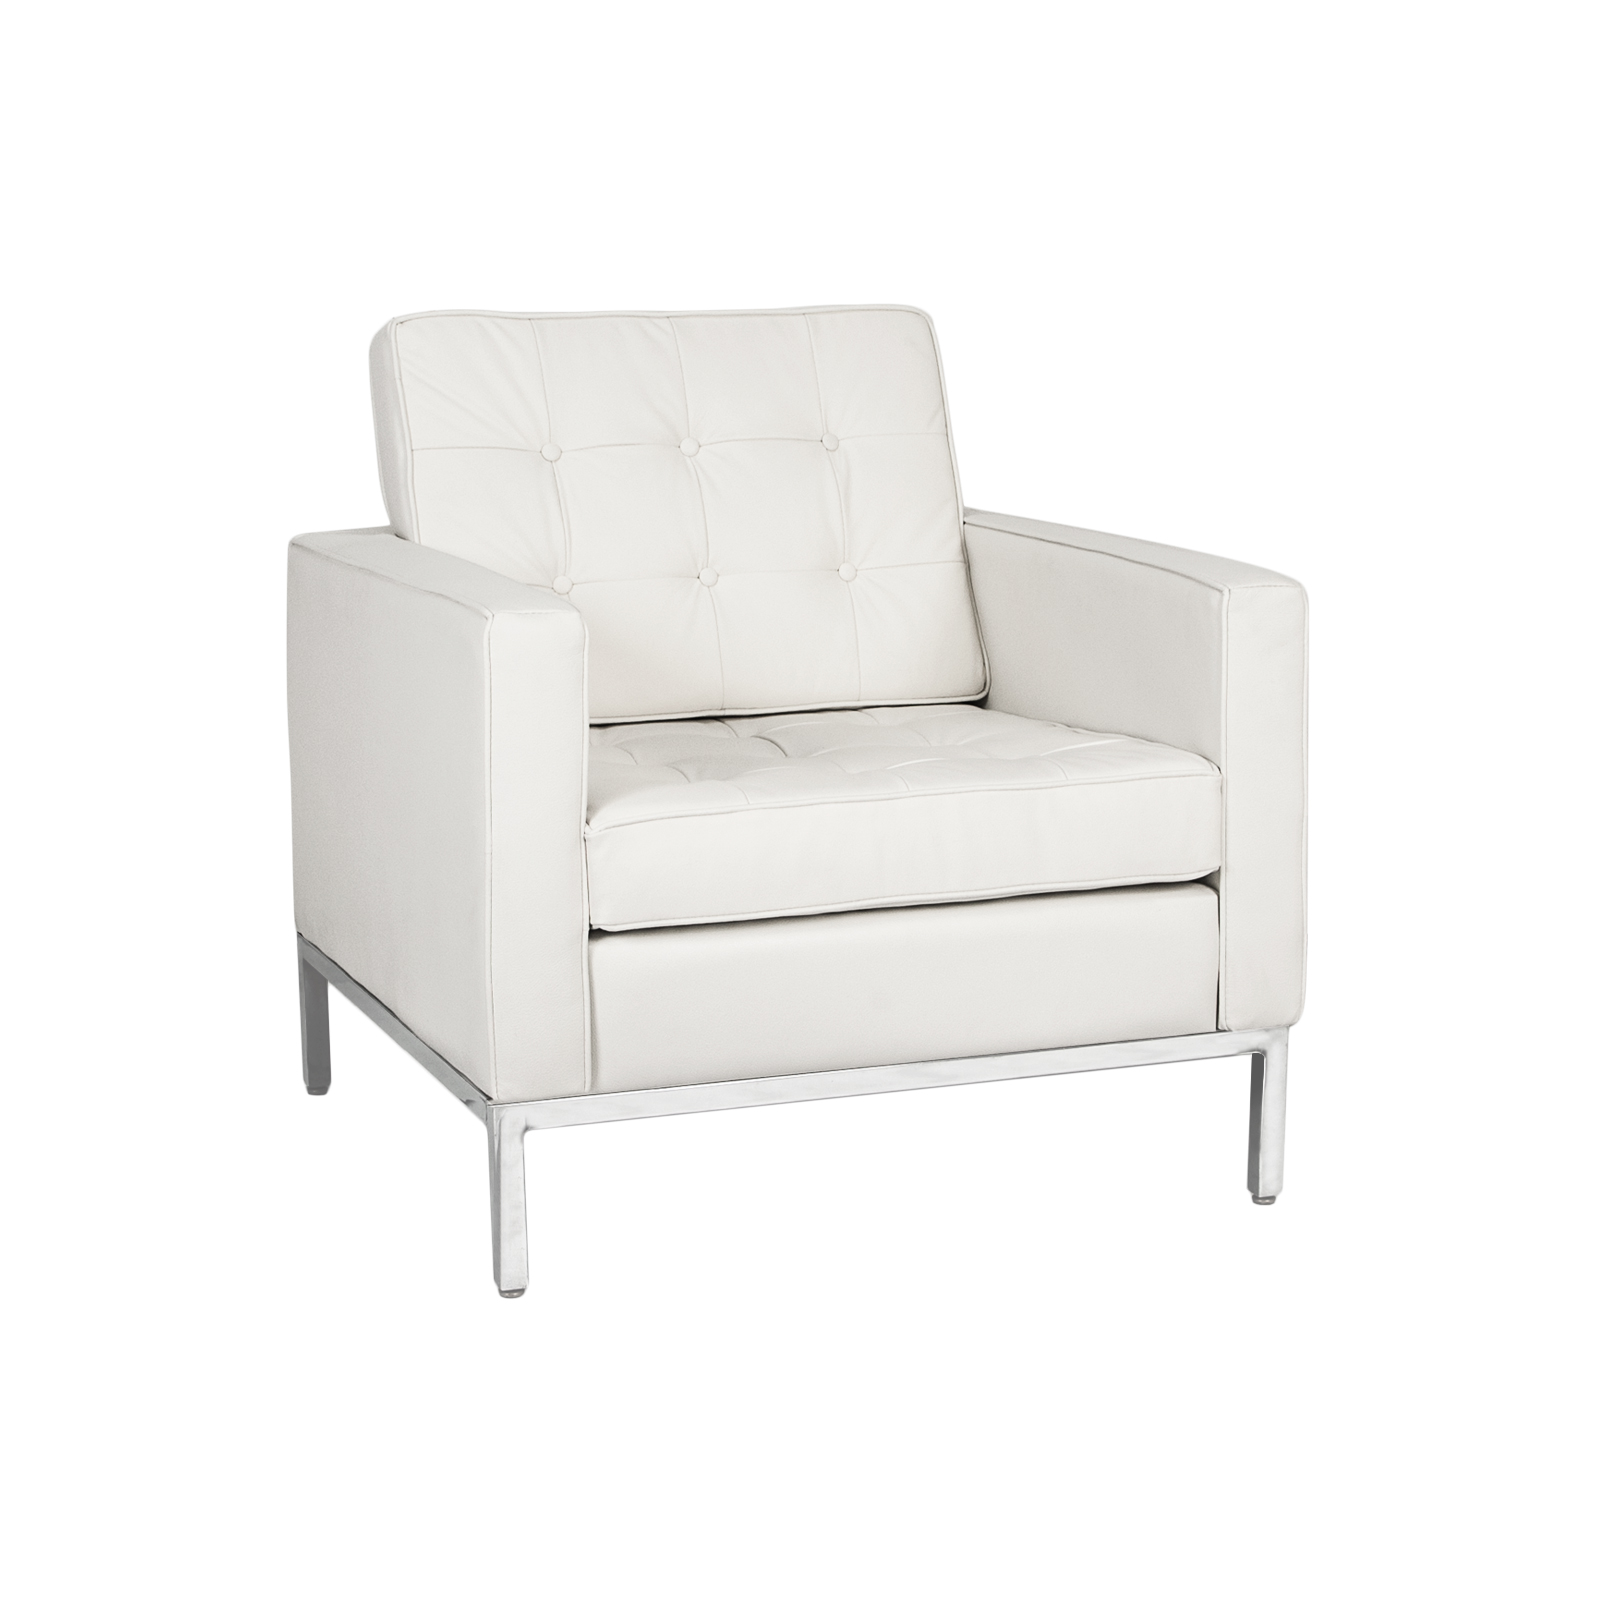 White Club Chair Set Furniture Rental Television And Film Formdecor Rhobh